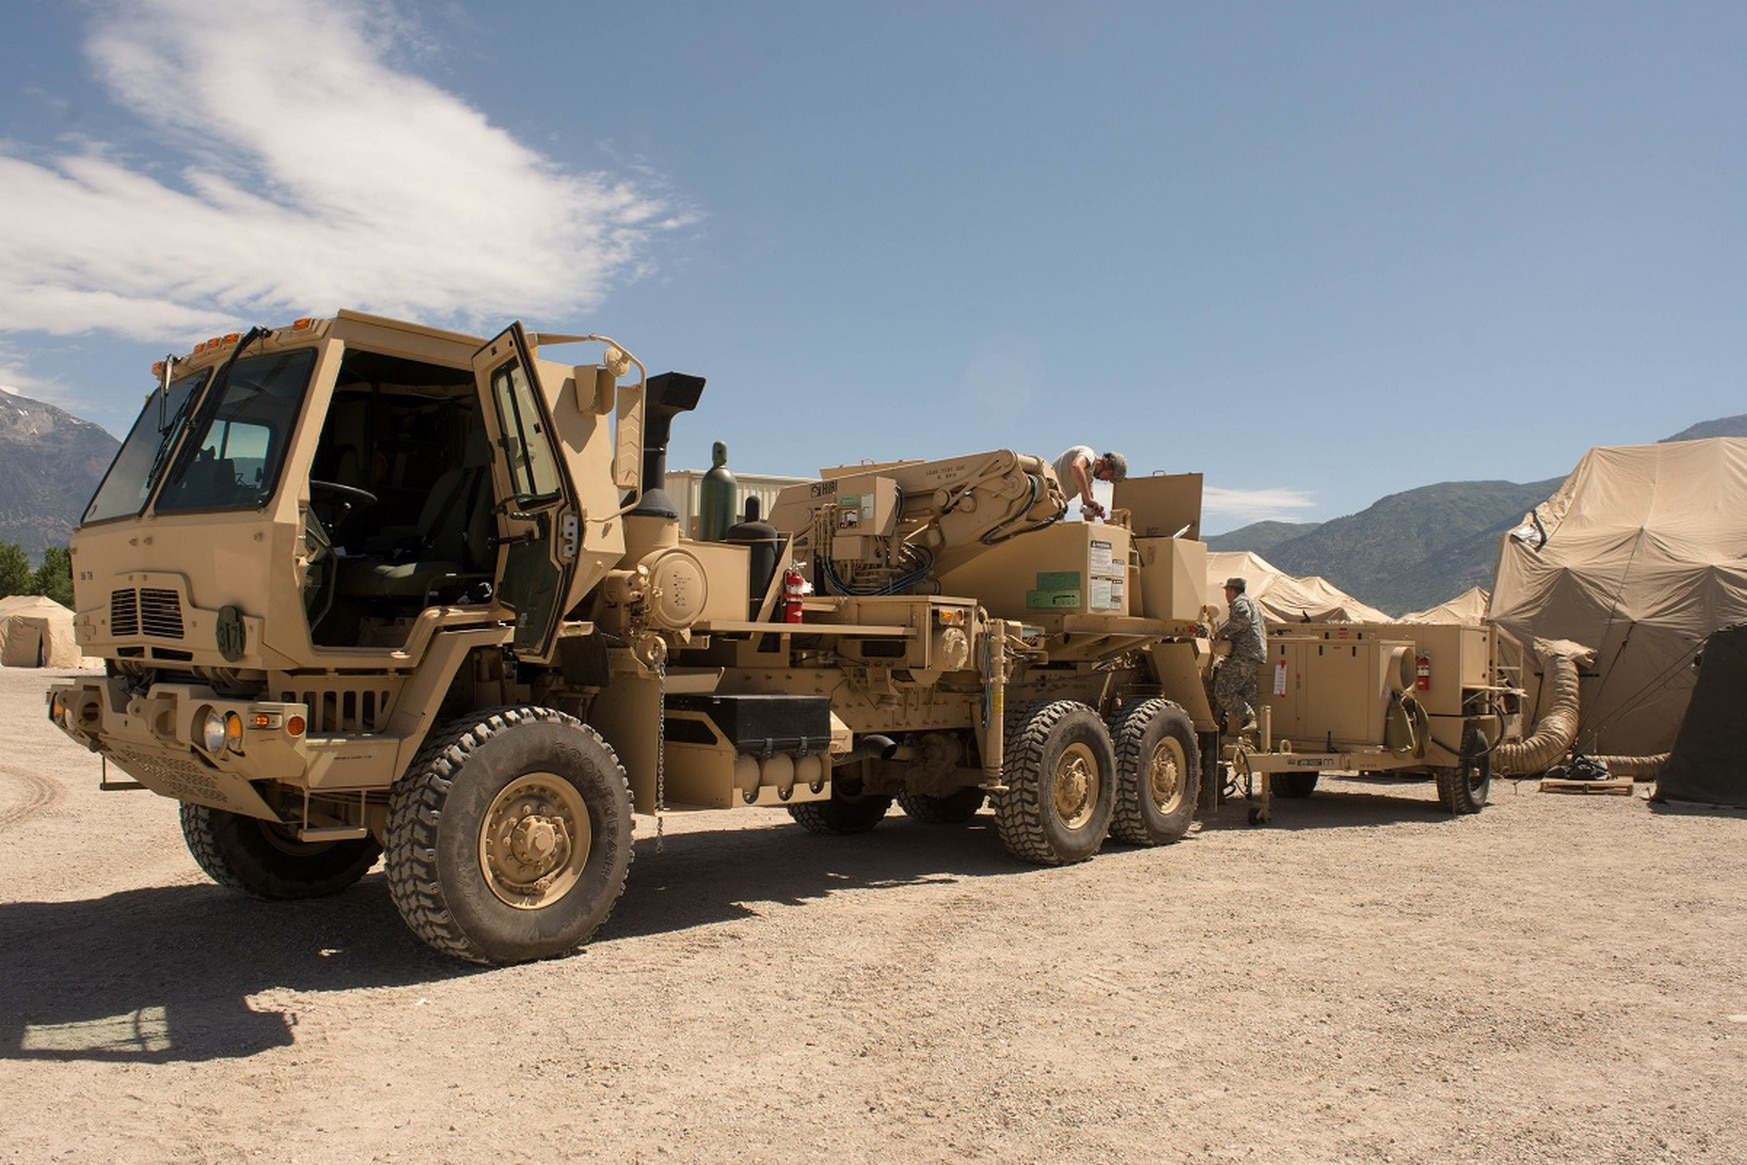 Oshkosh Defense has won a new contract to produce the next-generation variant of the Army's Family of Tactical Wheeled Vehicles. Pictured here is an FMTV 5-ton wrecker during Operation Sustain Fury in Ogden, Utah, June 10, 2017. (Photo by Sgt. Kayla Benson/U.S. Army)